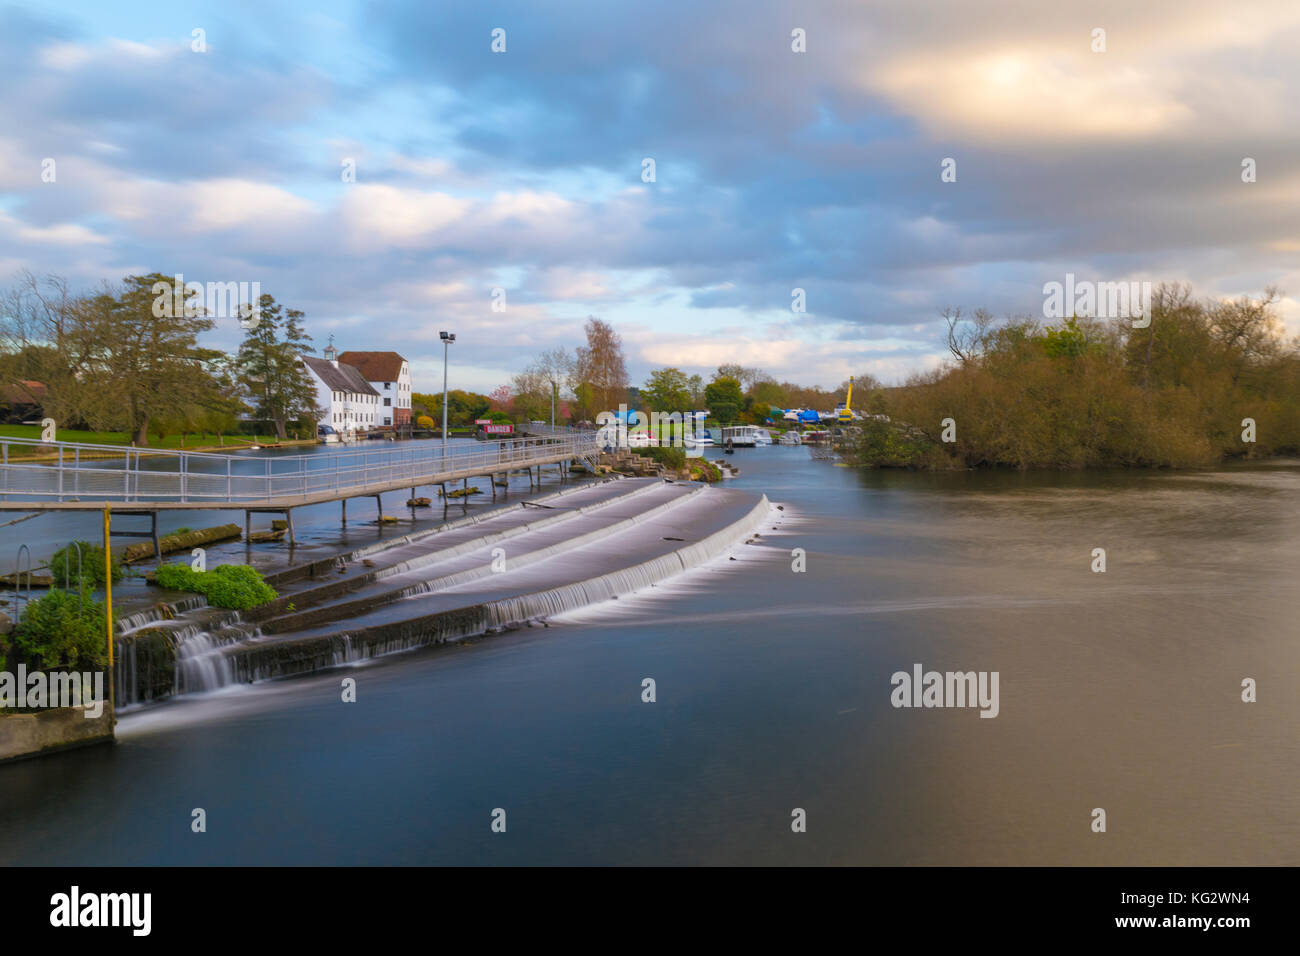 River Thames at Hambleden Weir and Lock - Stock Image